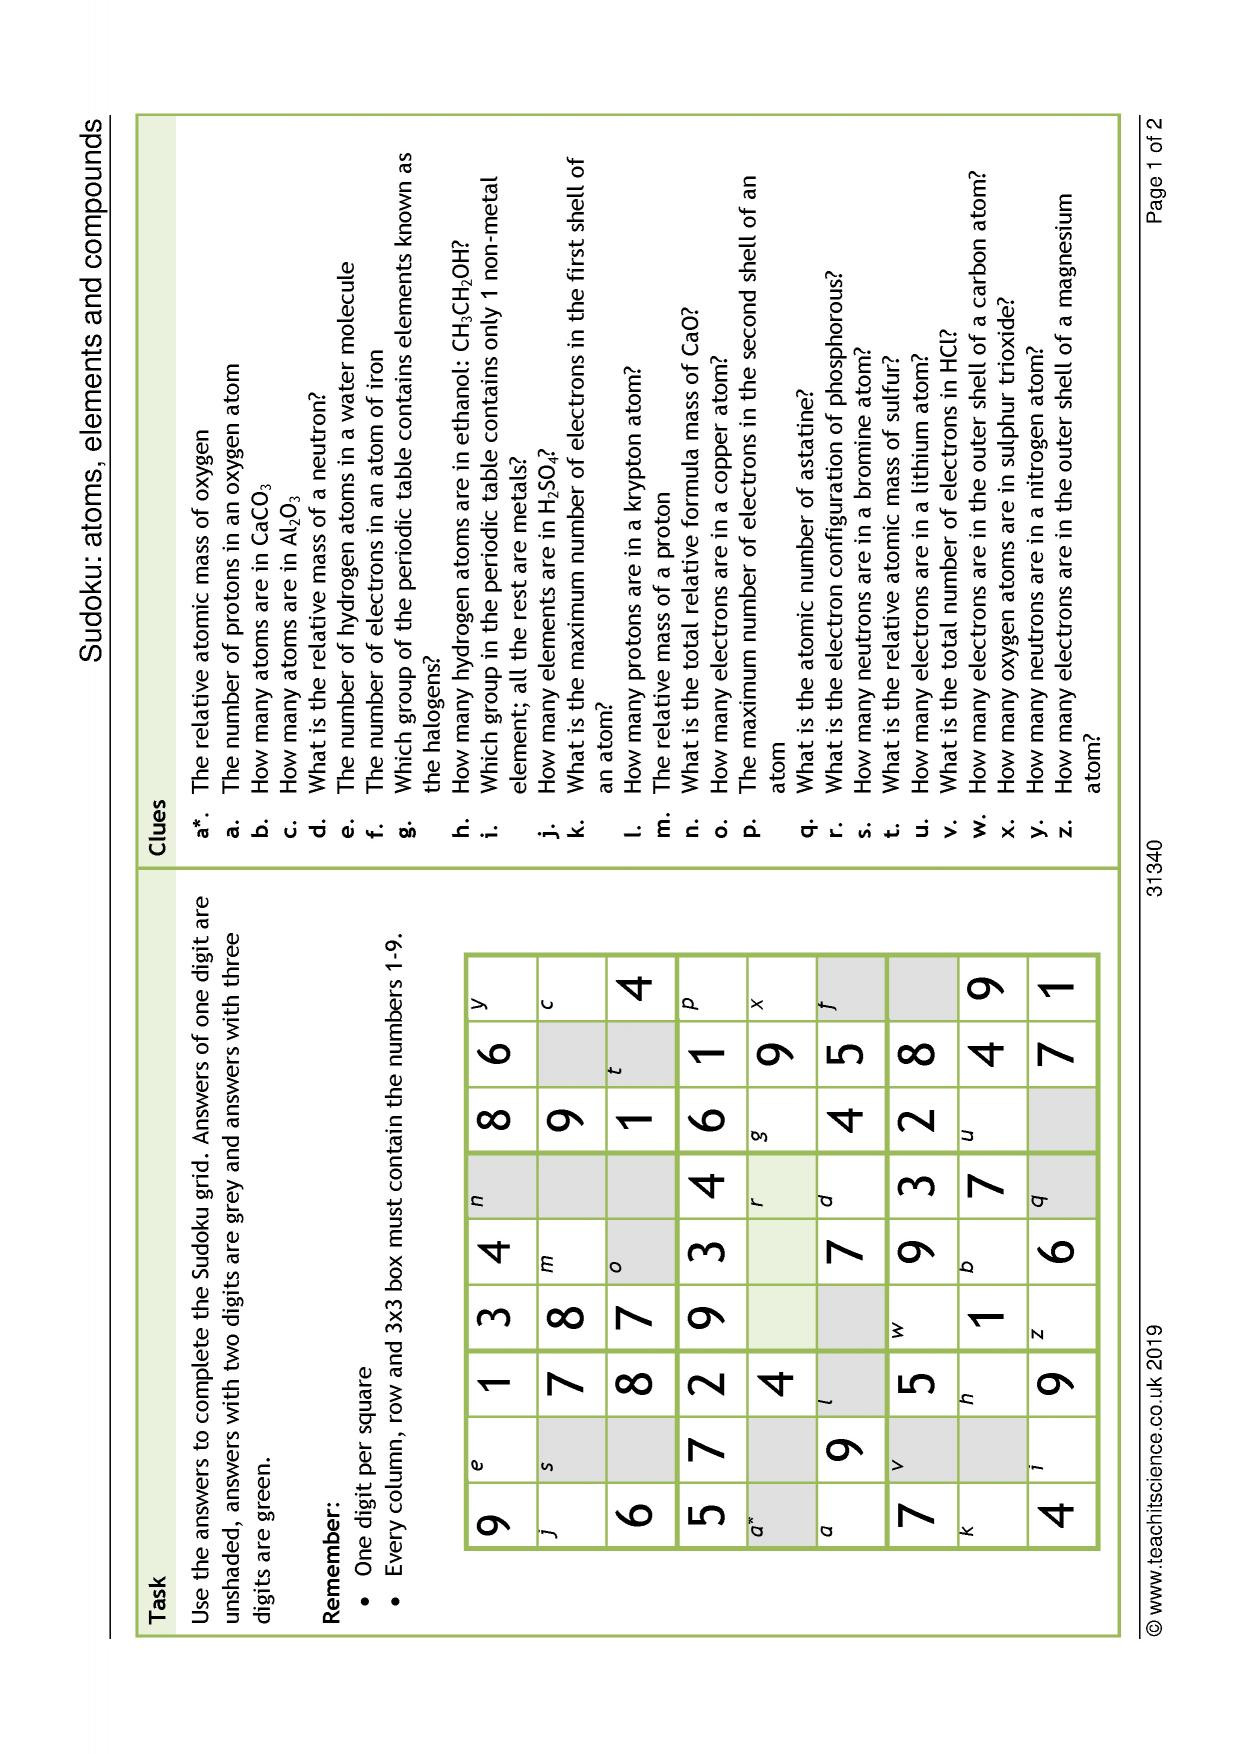 31 Elements Compounds Mixtures Worksheet Answers